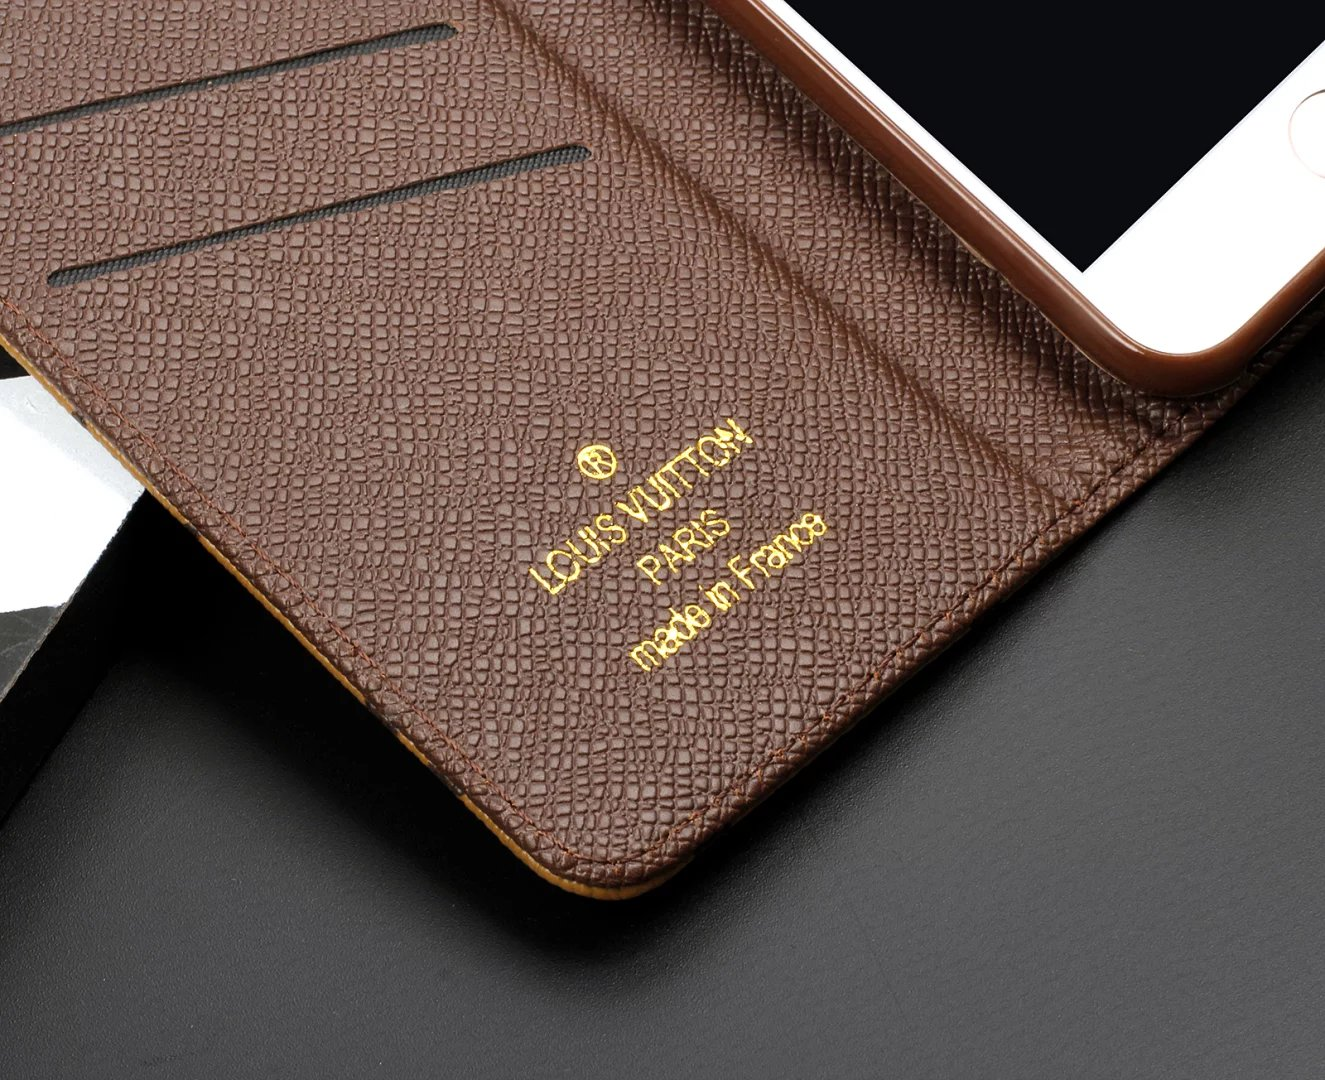 coolest iphone 8 Plus covers apple case for iphone 8 Plus Louis Vuitton iphone 8 Plus case cell phone cover brands custom iphone covers best iPhone 8 Plus cases for women personal phone cases cell phone protector cases customised phone cases